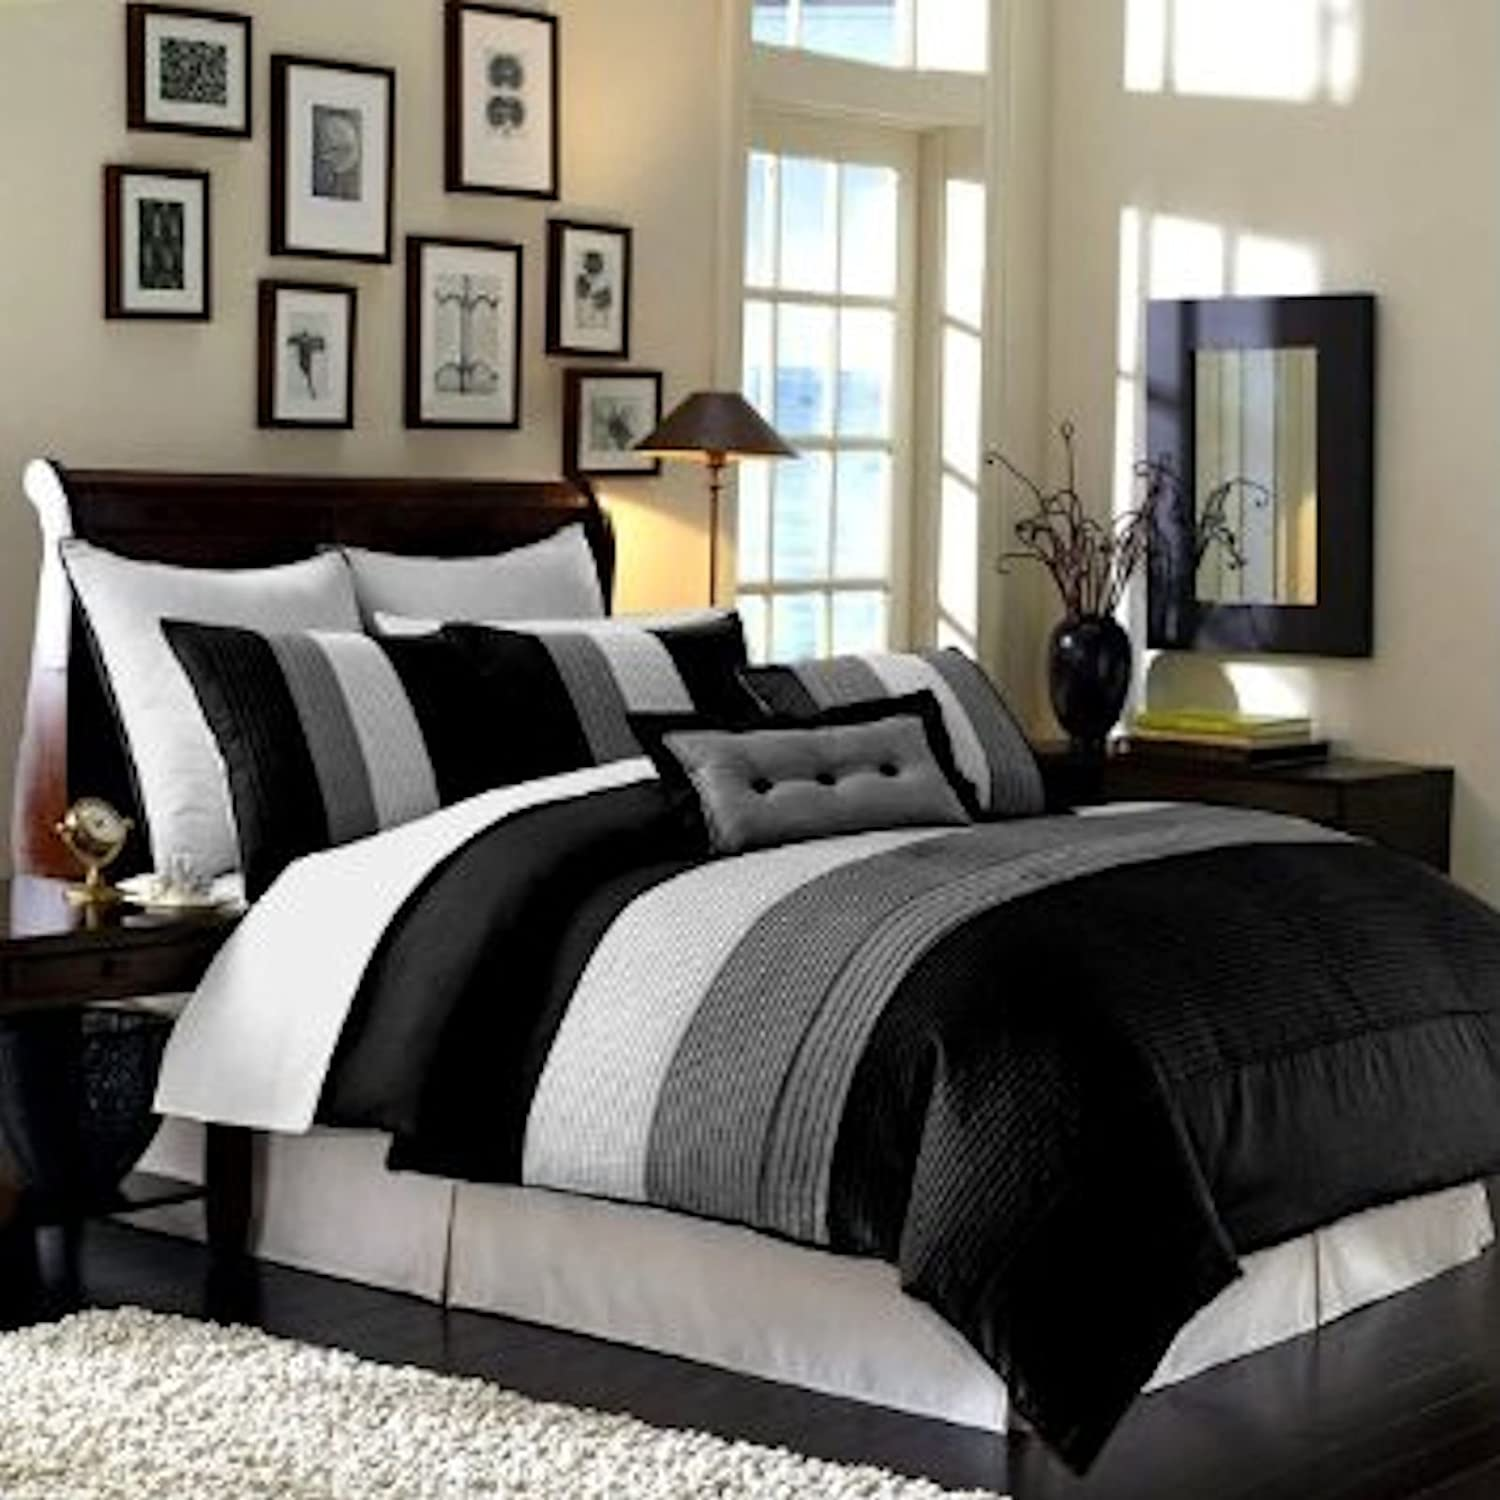 Amazon Com Legacy Decor 8pcs Modern Black White Grey Luxury Stripe